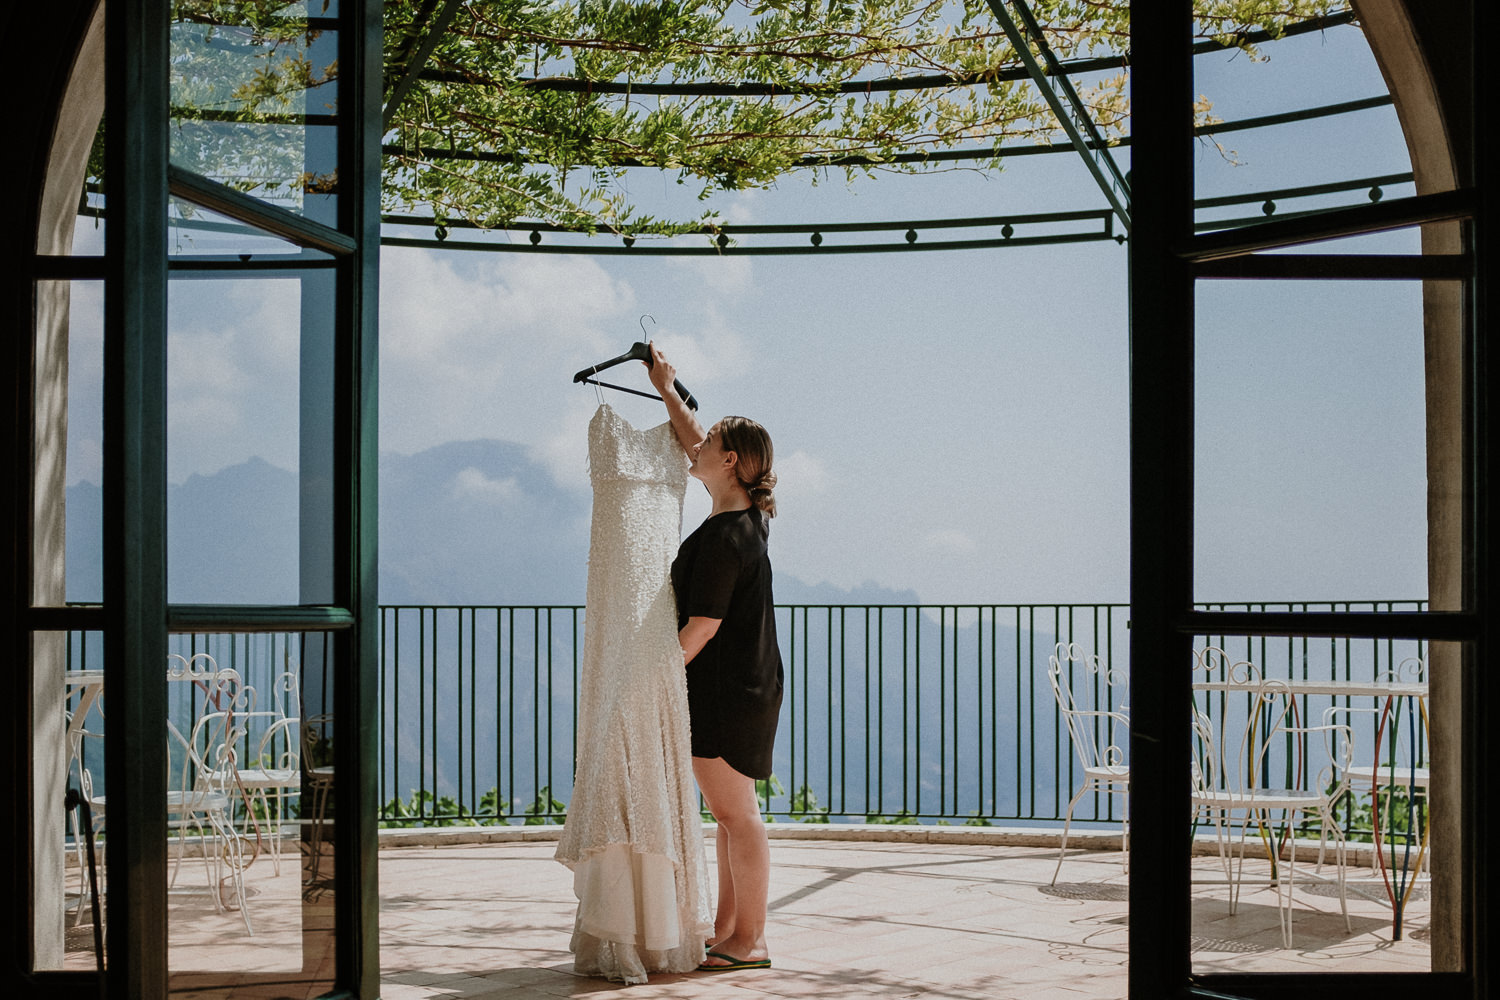 bride-dress-bridemaids-getting-ready-matrimonio-villa-eva-ravello-francesco-ferrarini